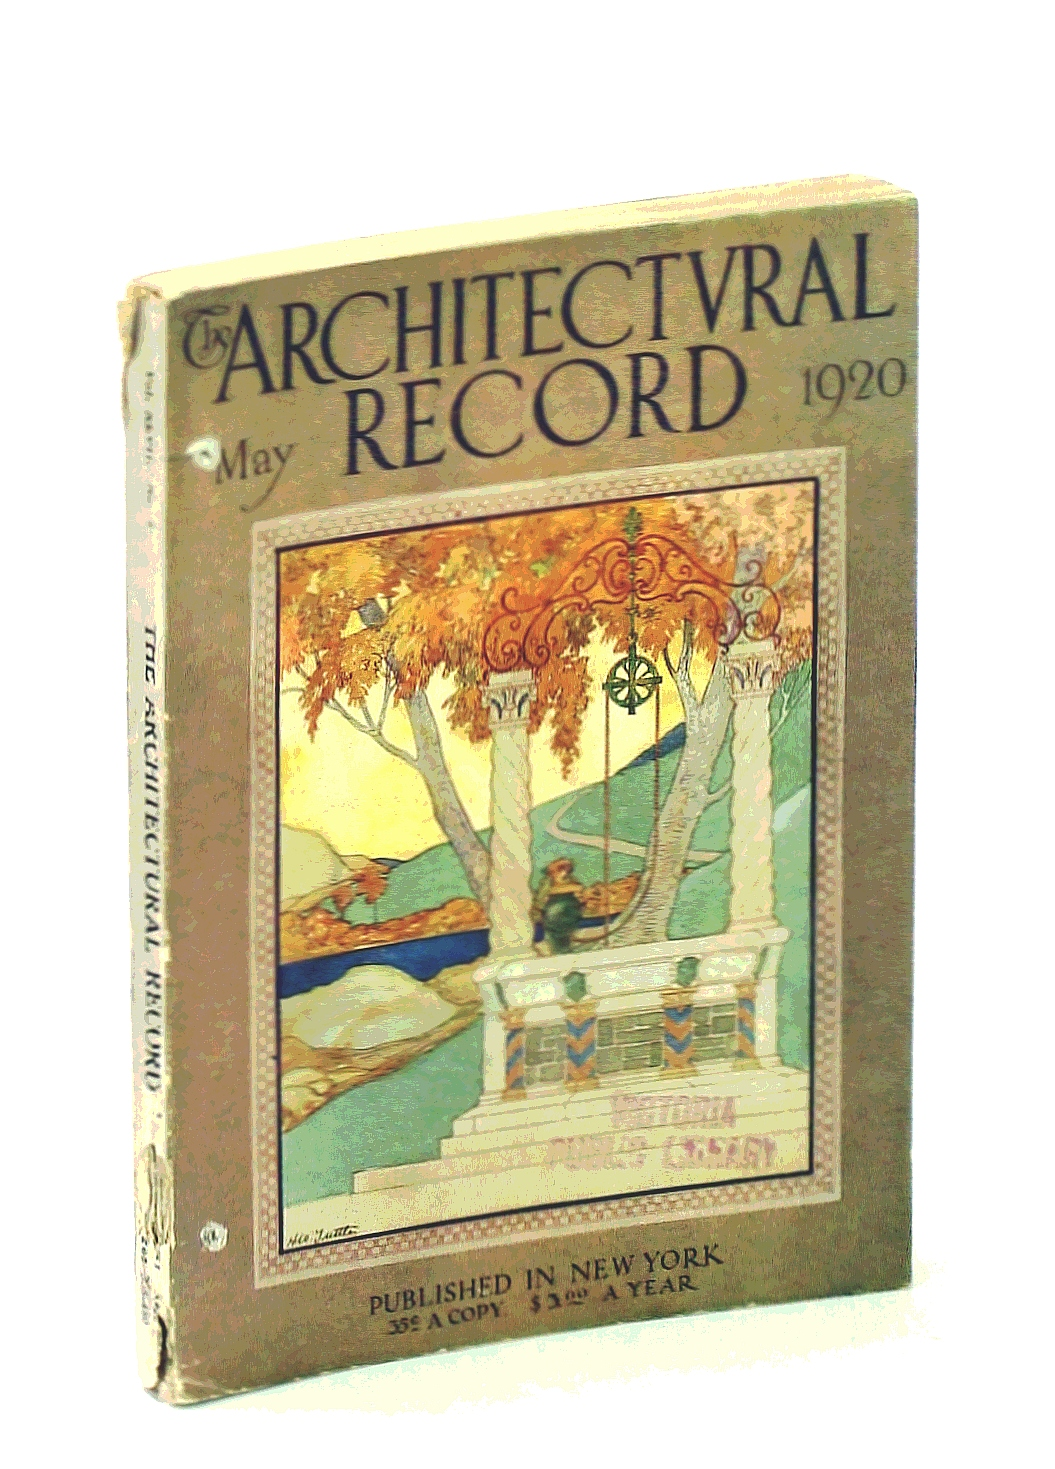 Image for The Architectural Record, Vol, XLVII, No. 5, May 1920, Serial No. 260 - The Gardens of Charles M. Schwab / Arthur Byne